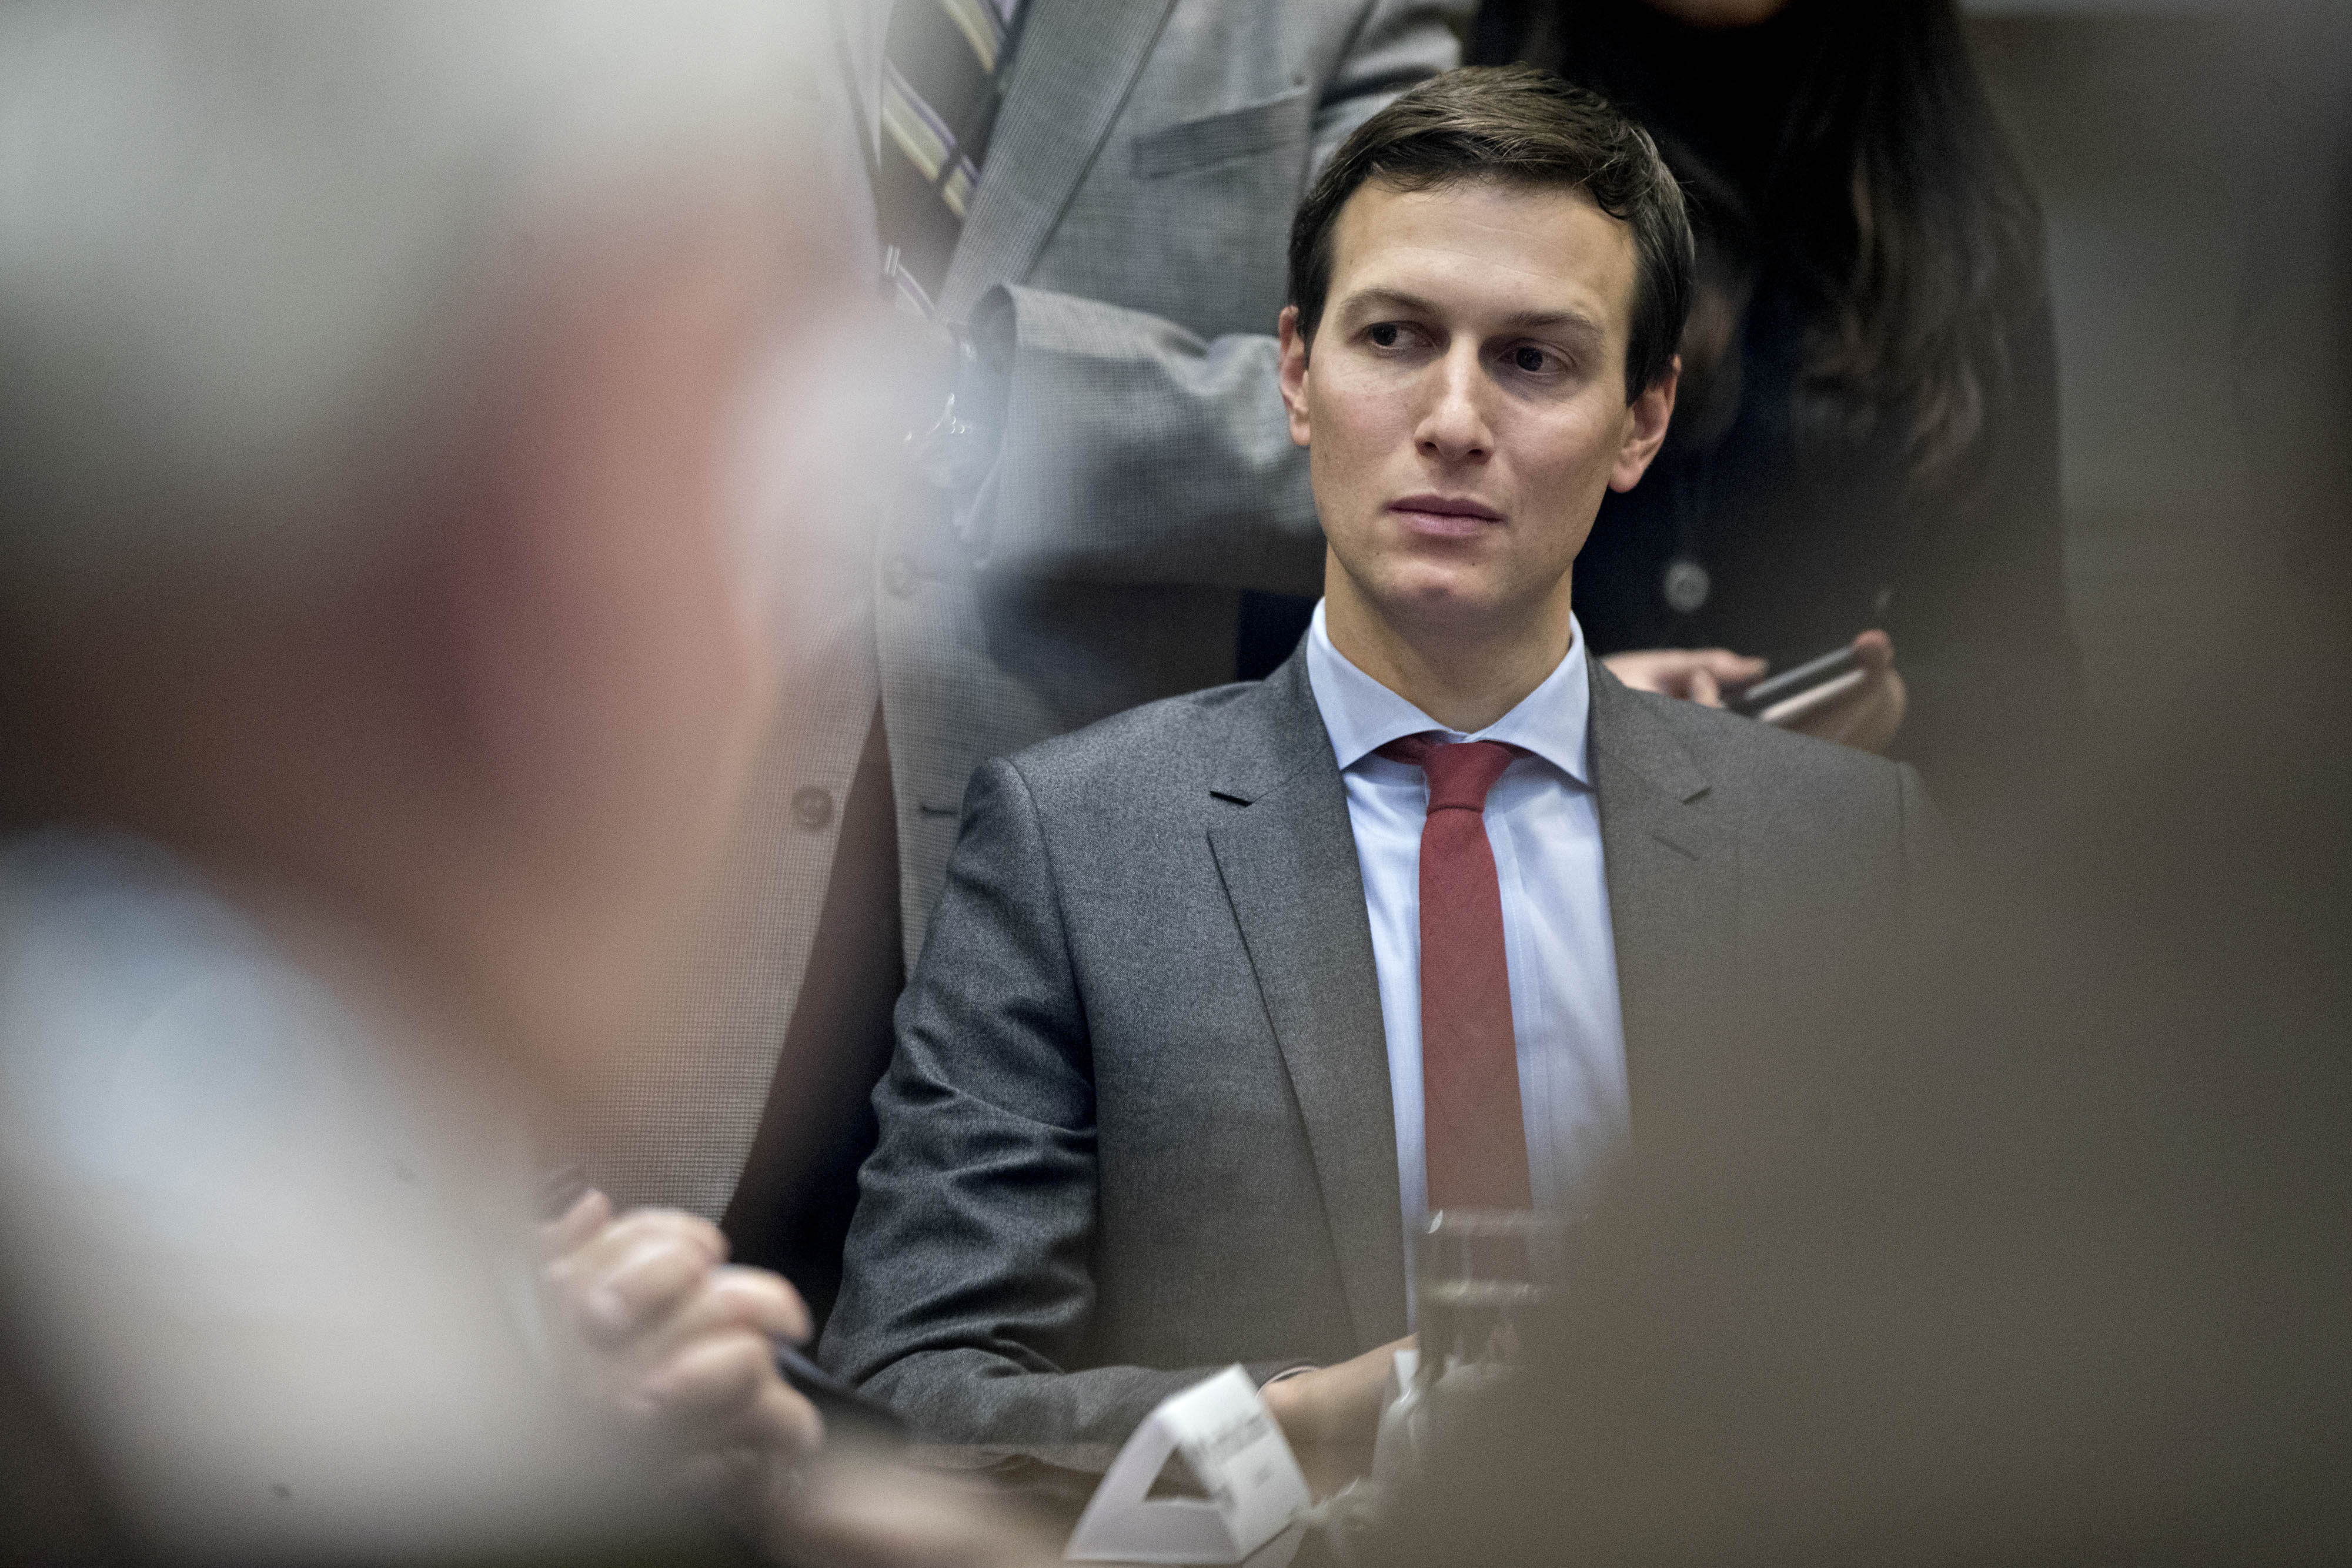 Jared Kushner, senior White House advisor, listens during a county sheriff listening session with U.S. President Donald Trump on Tuesday, Feb. 7, 2017.